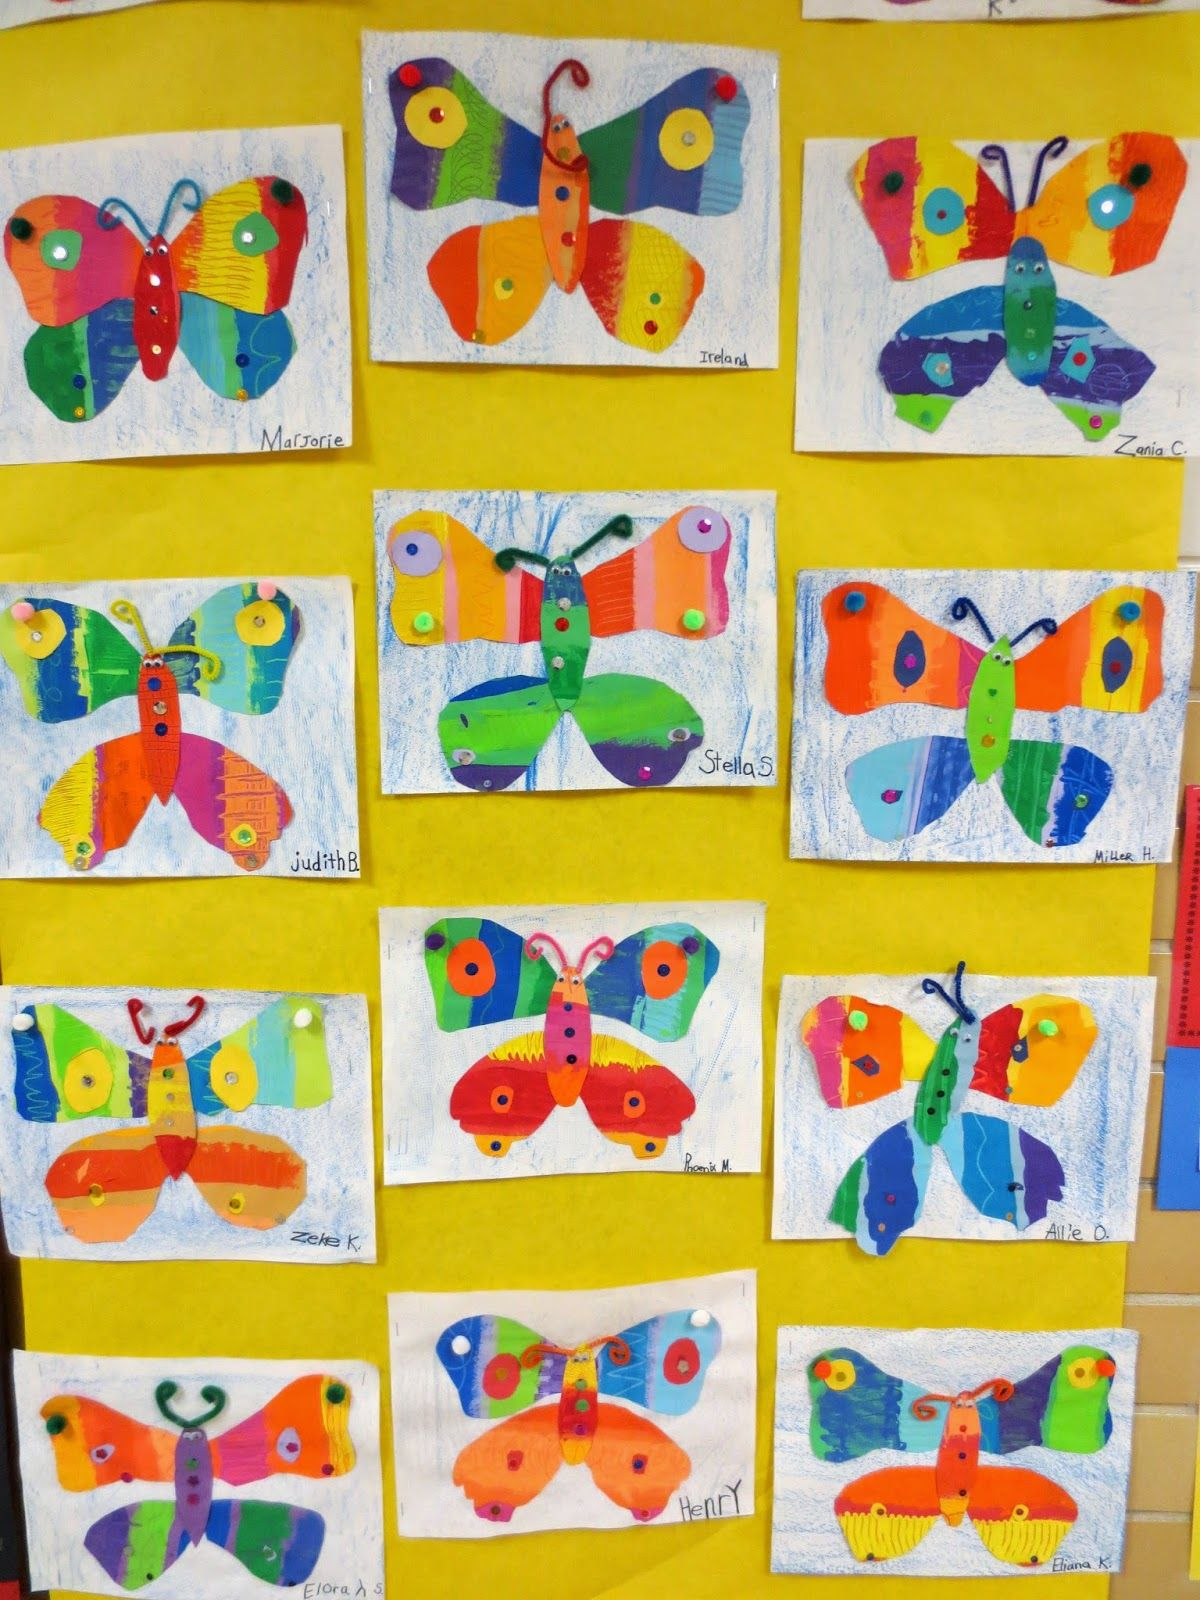 Zilker Elementary Art Class | Collage | Pinterest | Elementary art ...